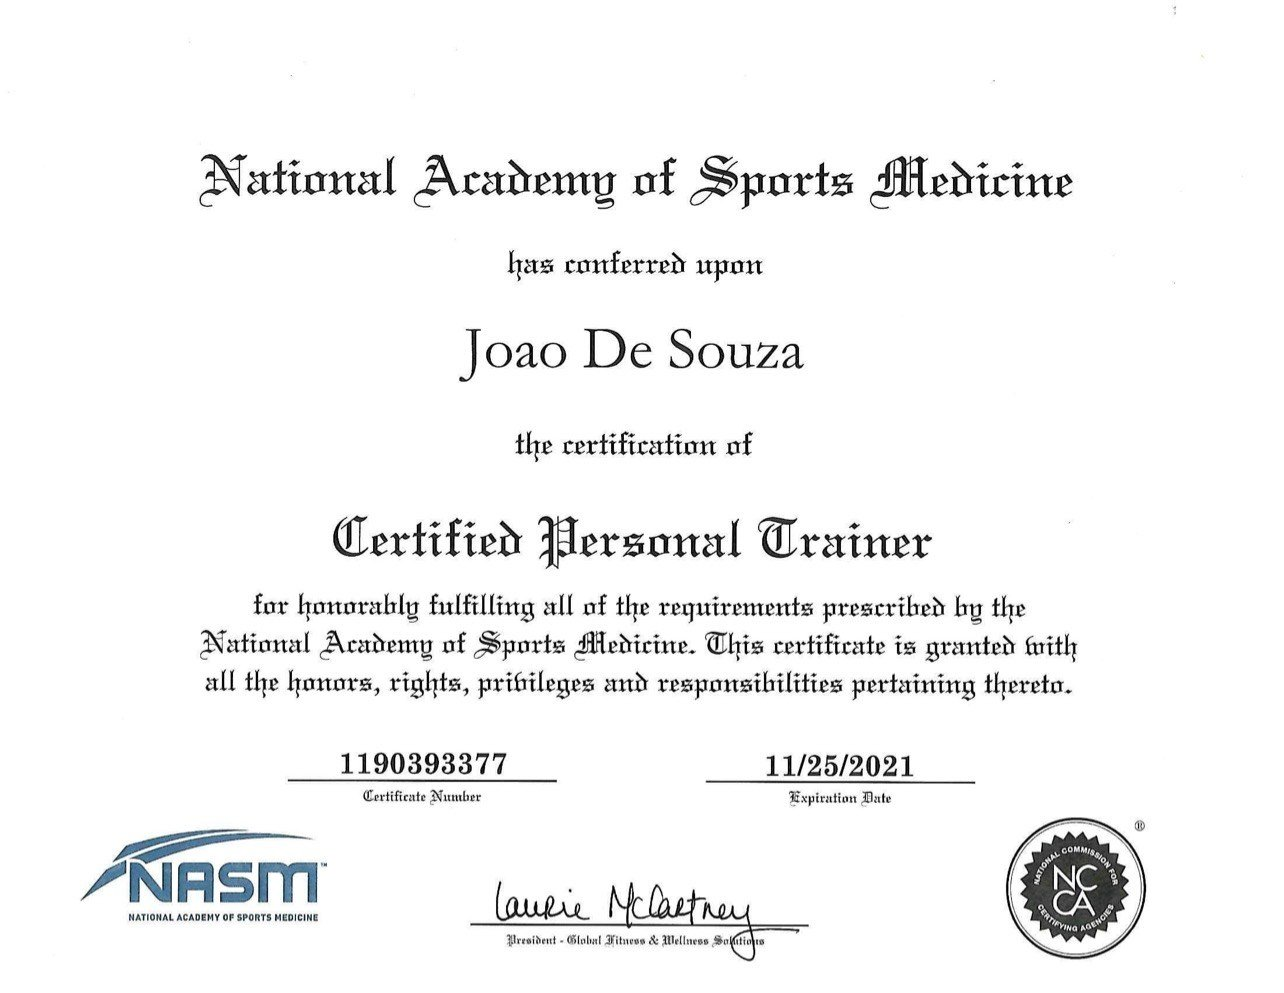 Certified Personal Trainer conferred by National Academy of Sports Medicine